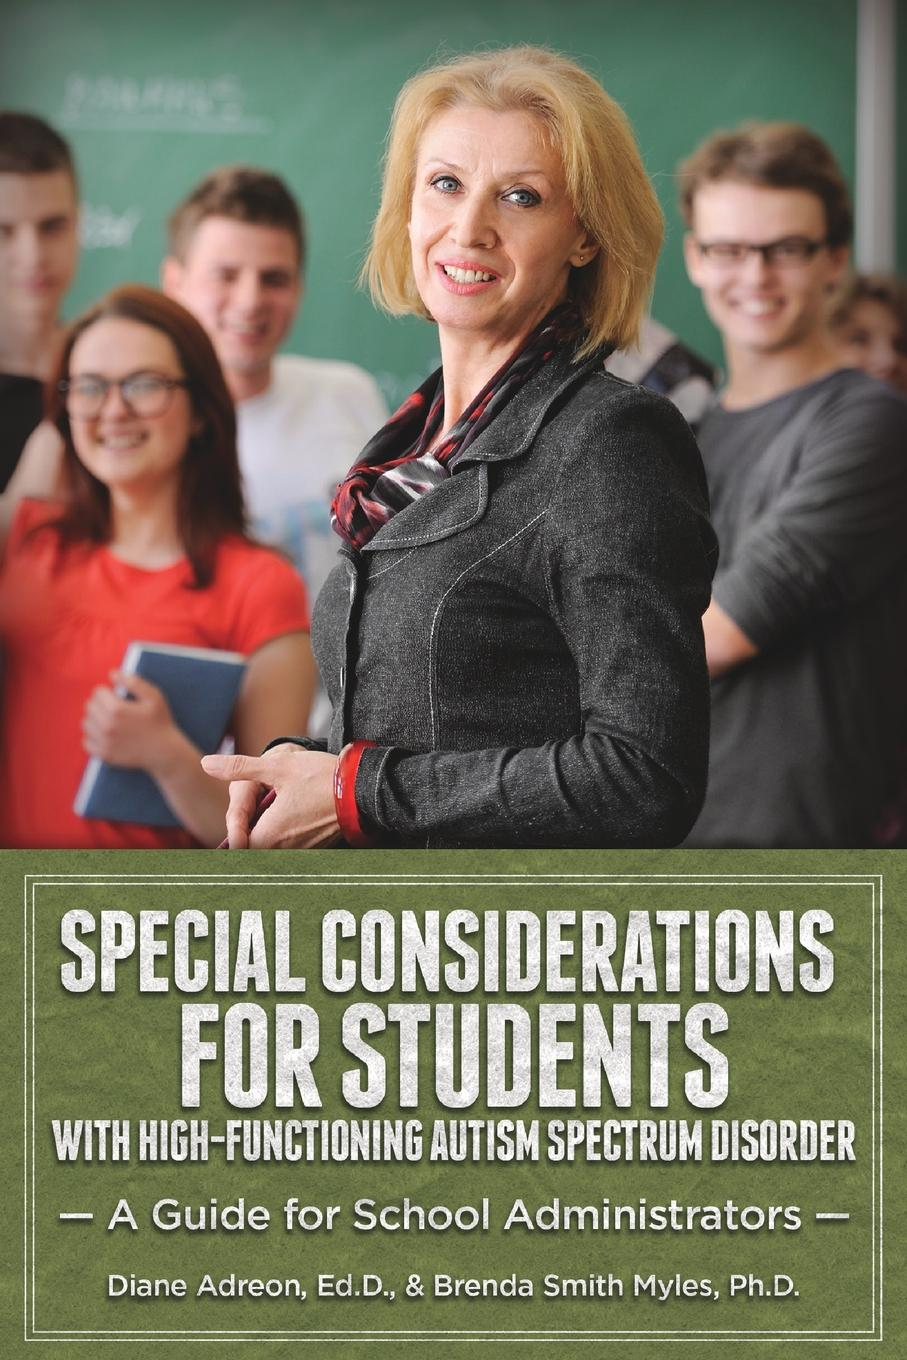 Special Considerations for Students with High-Functioning Autism Spectrum Disorder. A Guide for School Administrators School administrators play a key role in creating a mind-set within...